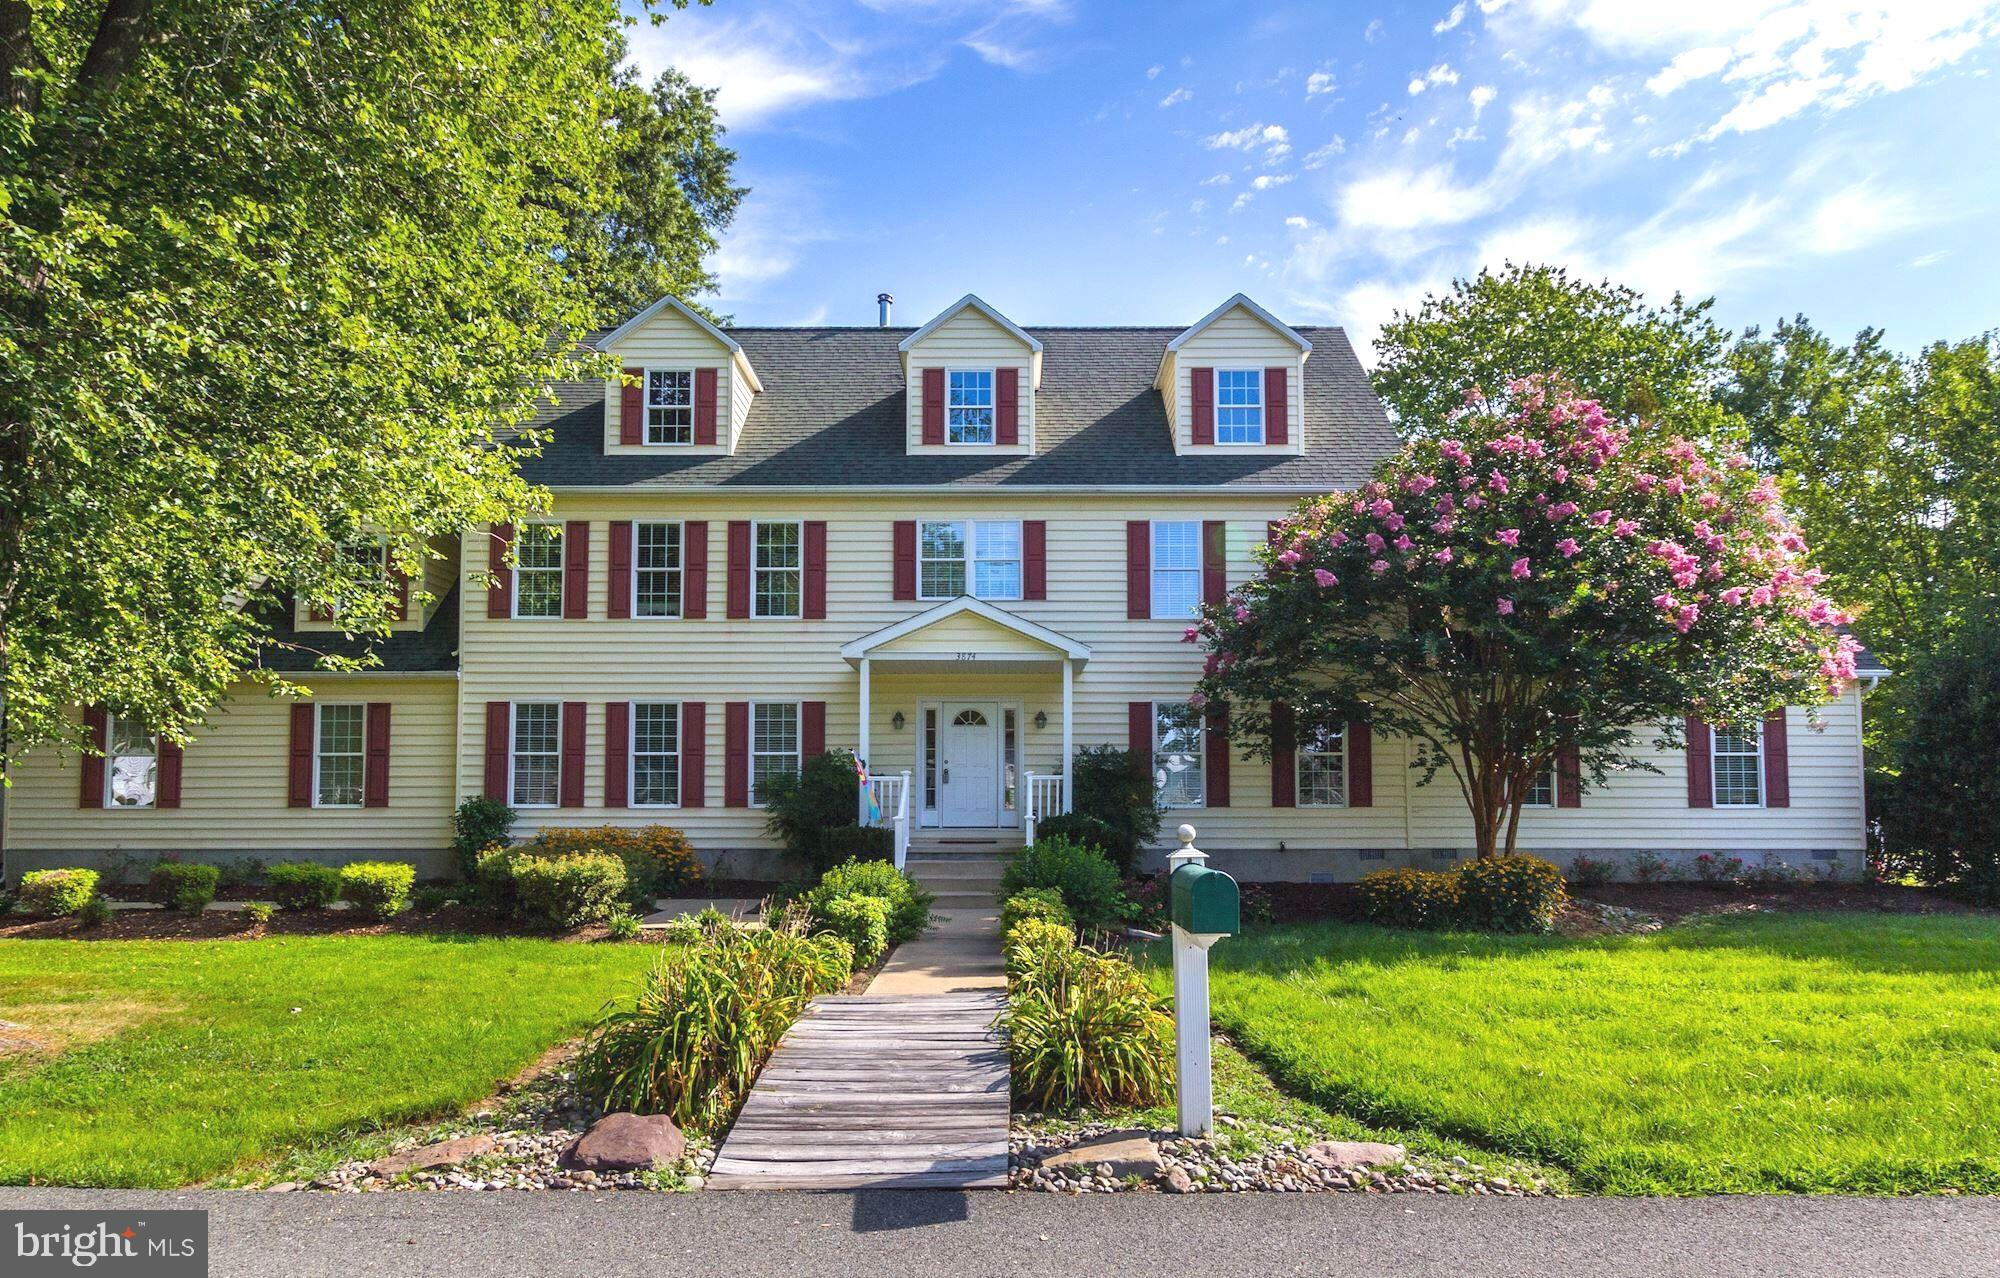 3874 HOLLY DRIVE, EDGEWATER, MD 21037